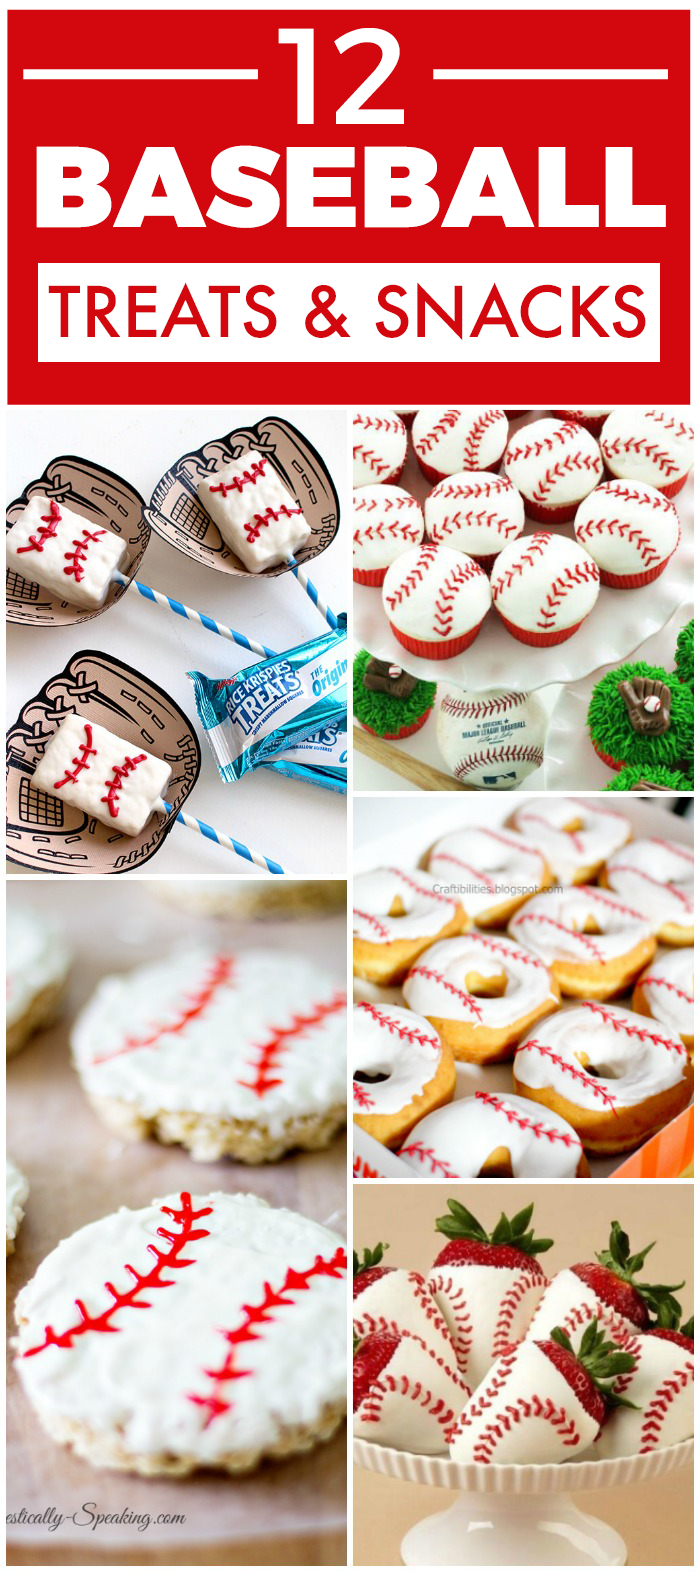 12 Yummy Baseball Snacks & Food